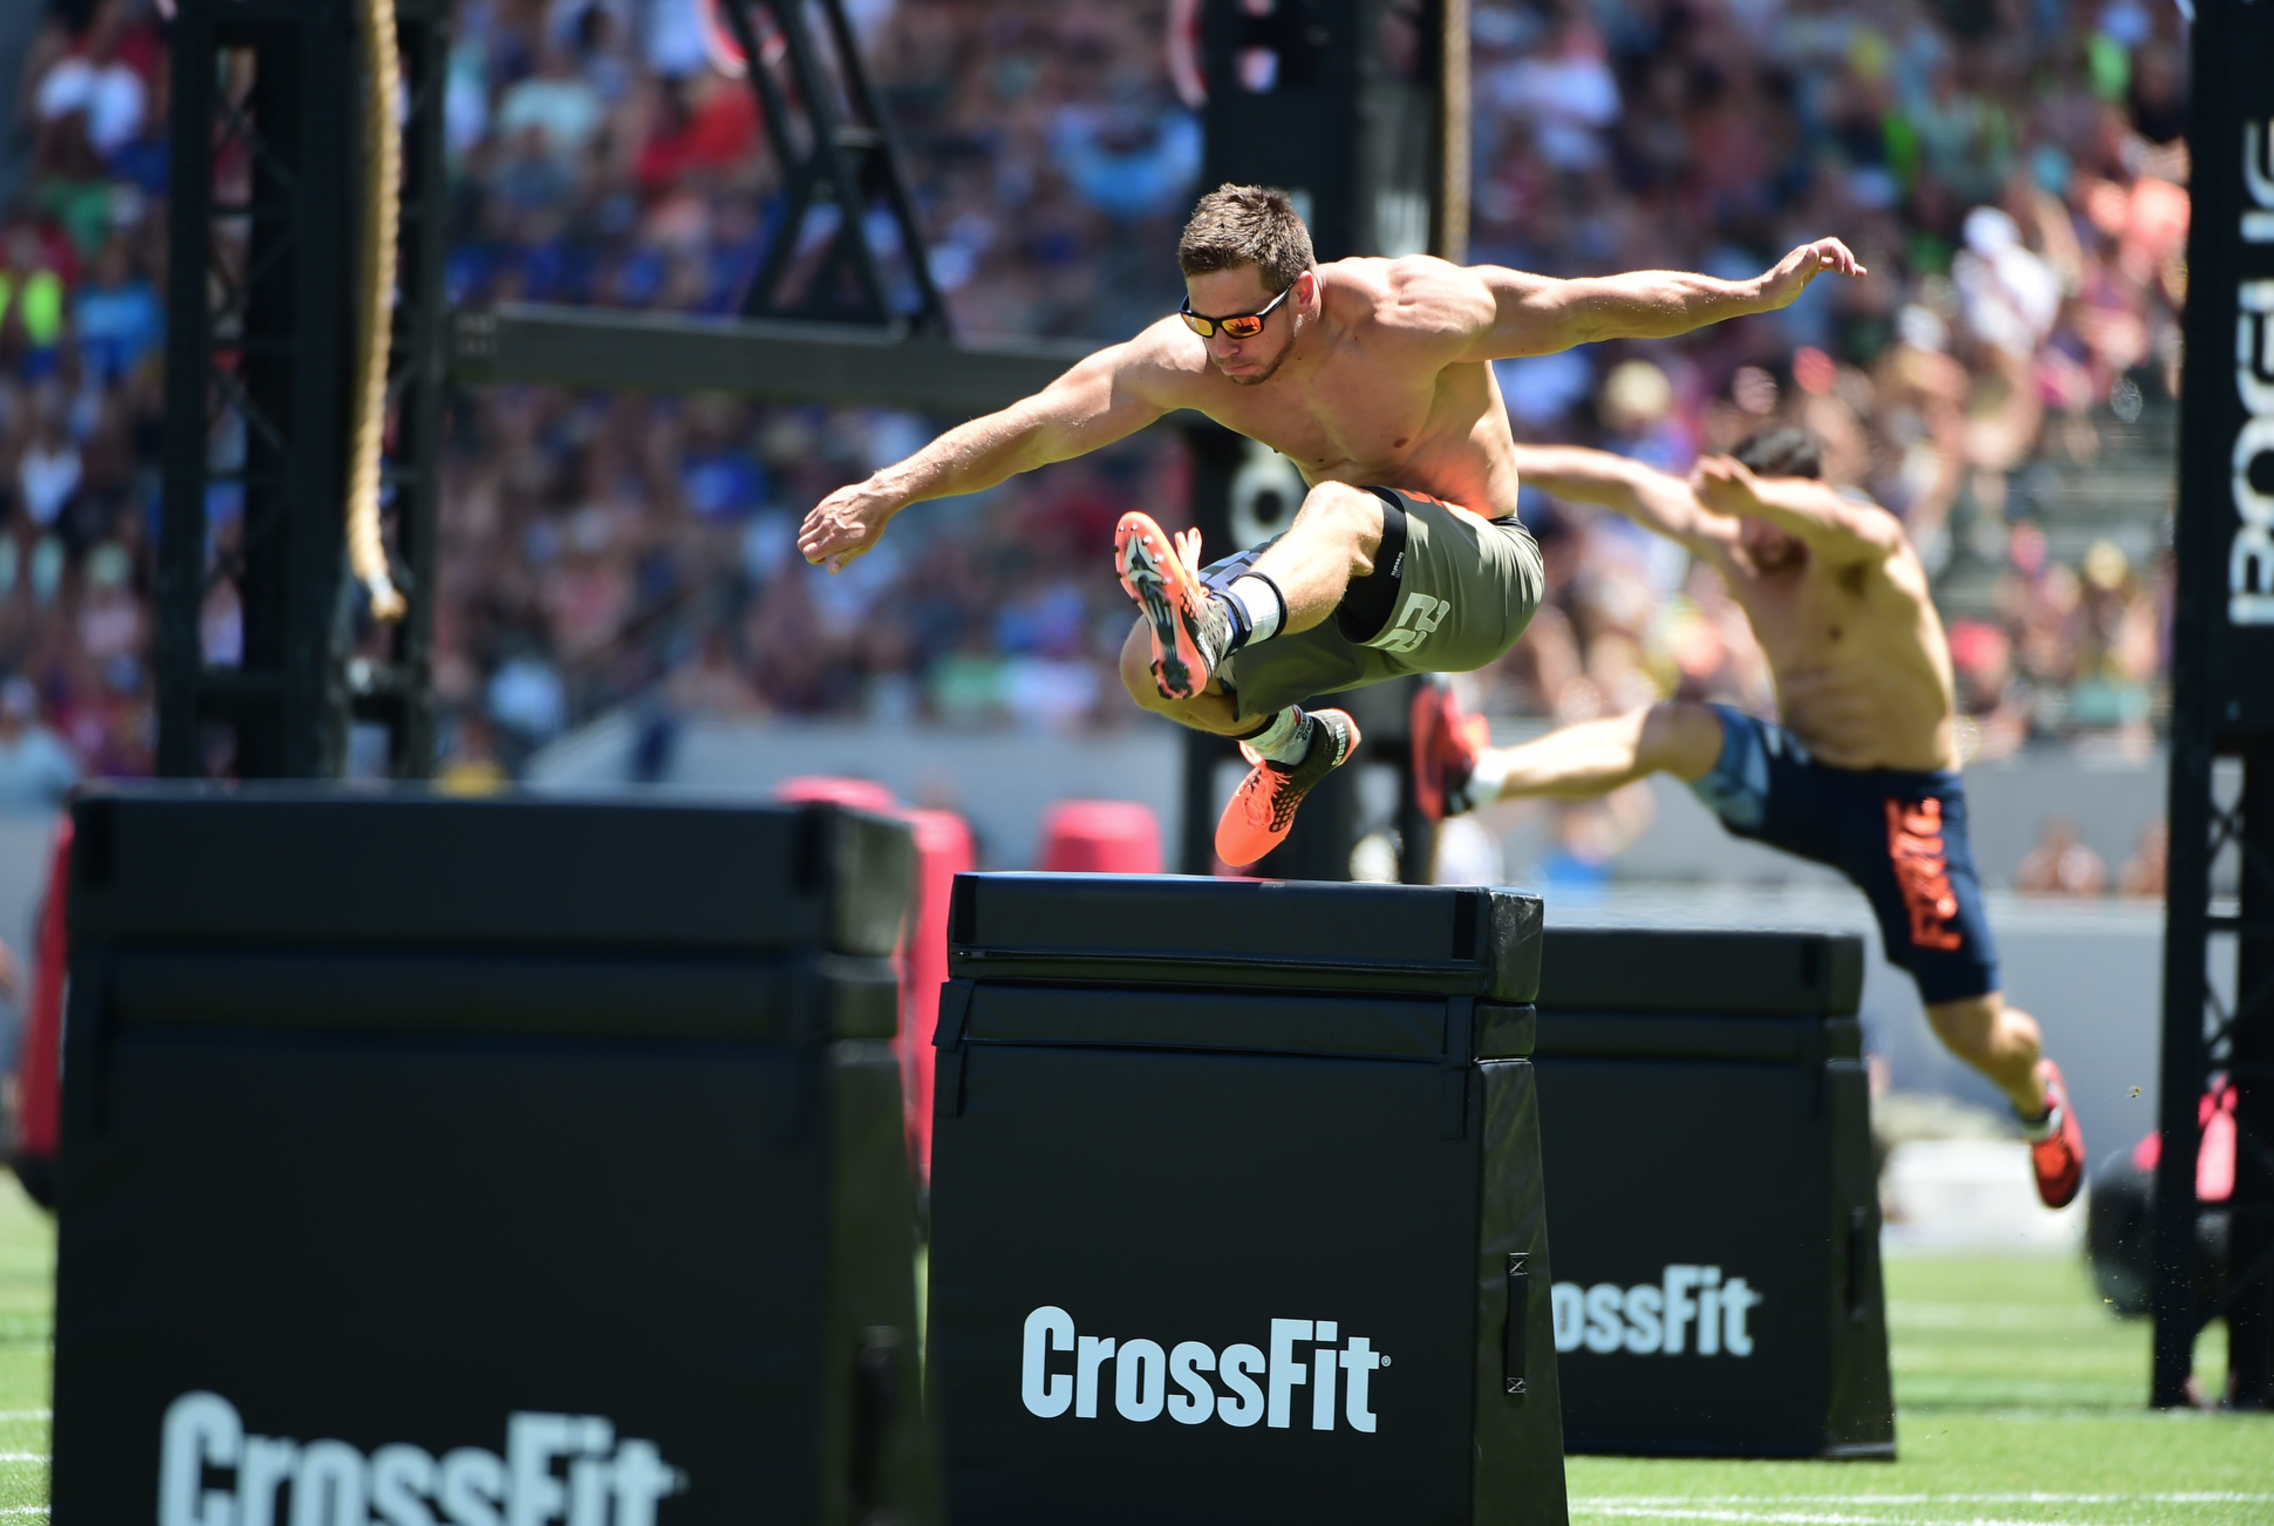 Dan Bailey taking on the Obstacle Course at the 2015 CrossFit Games, Nikon 200-400 with 1.4x, Nikon D4s --  Copyright CrossFit Inc, 2016, all rights reserved